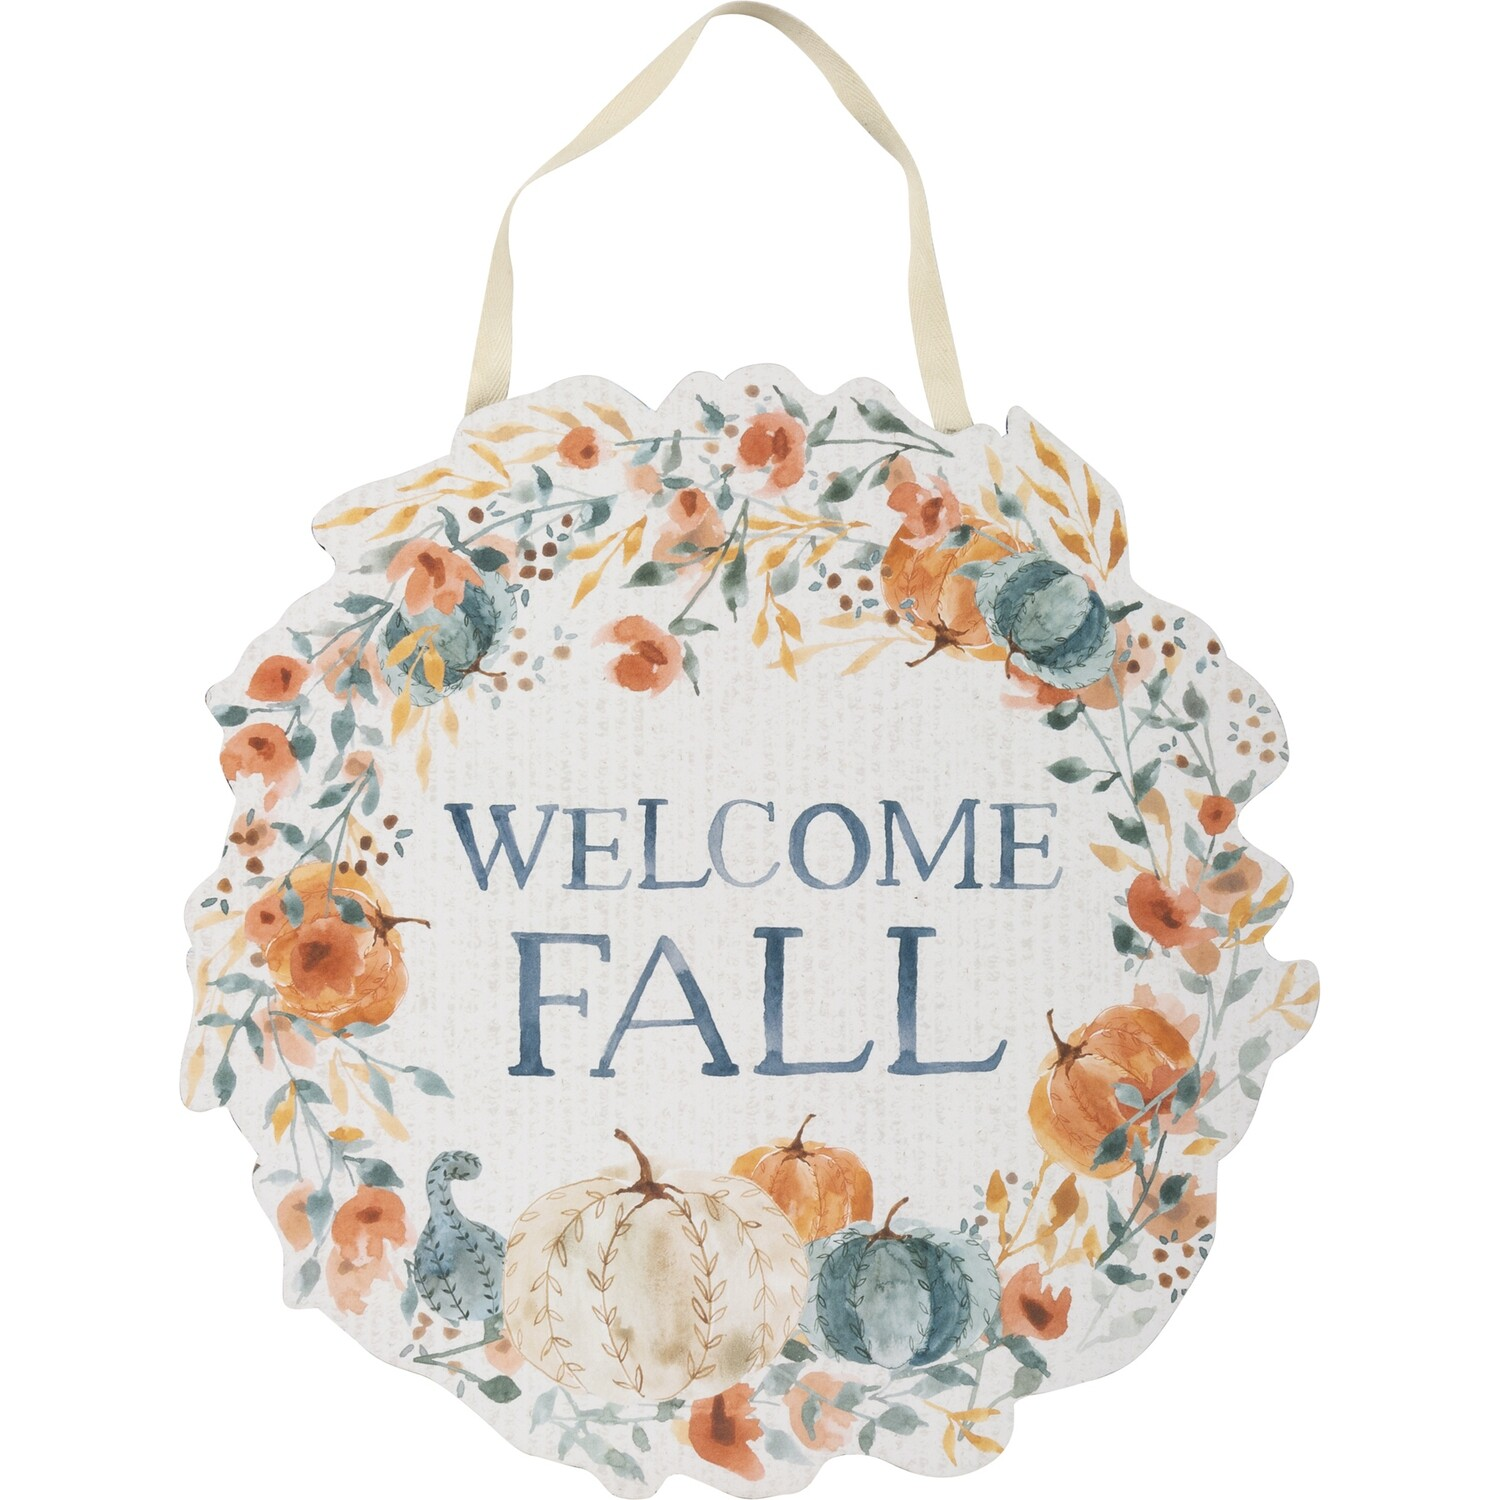 Welcome Fall Hanging Decor